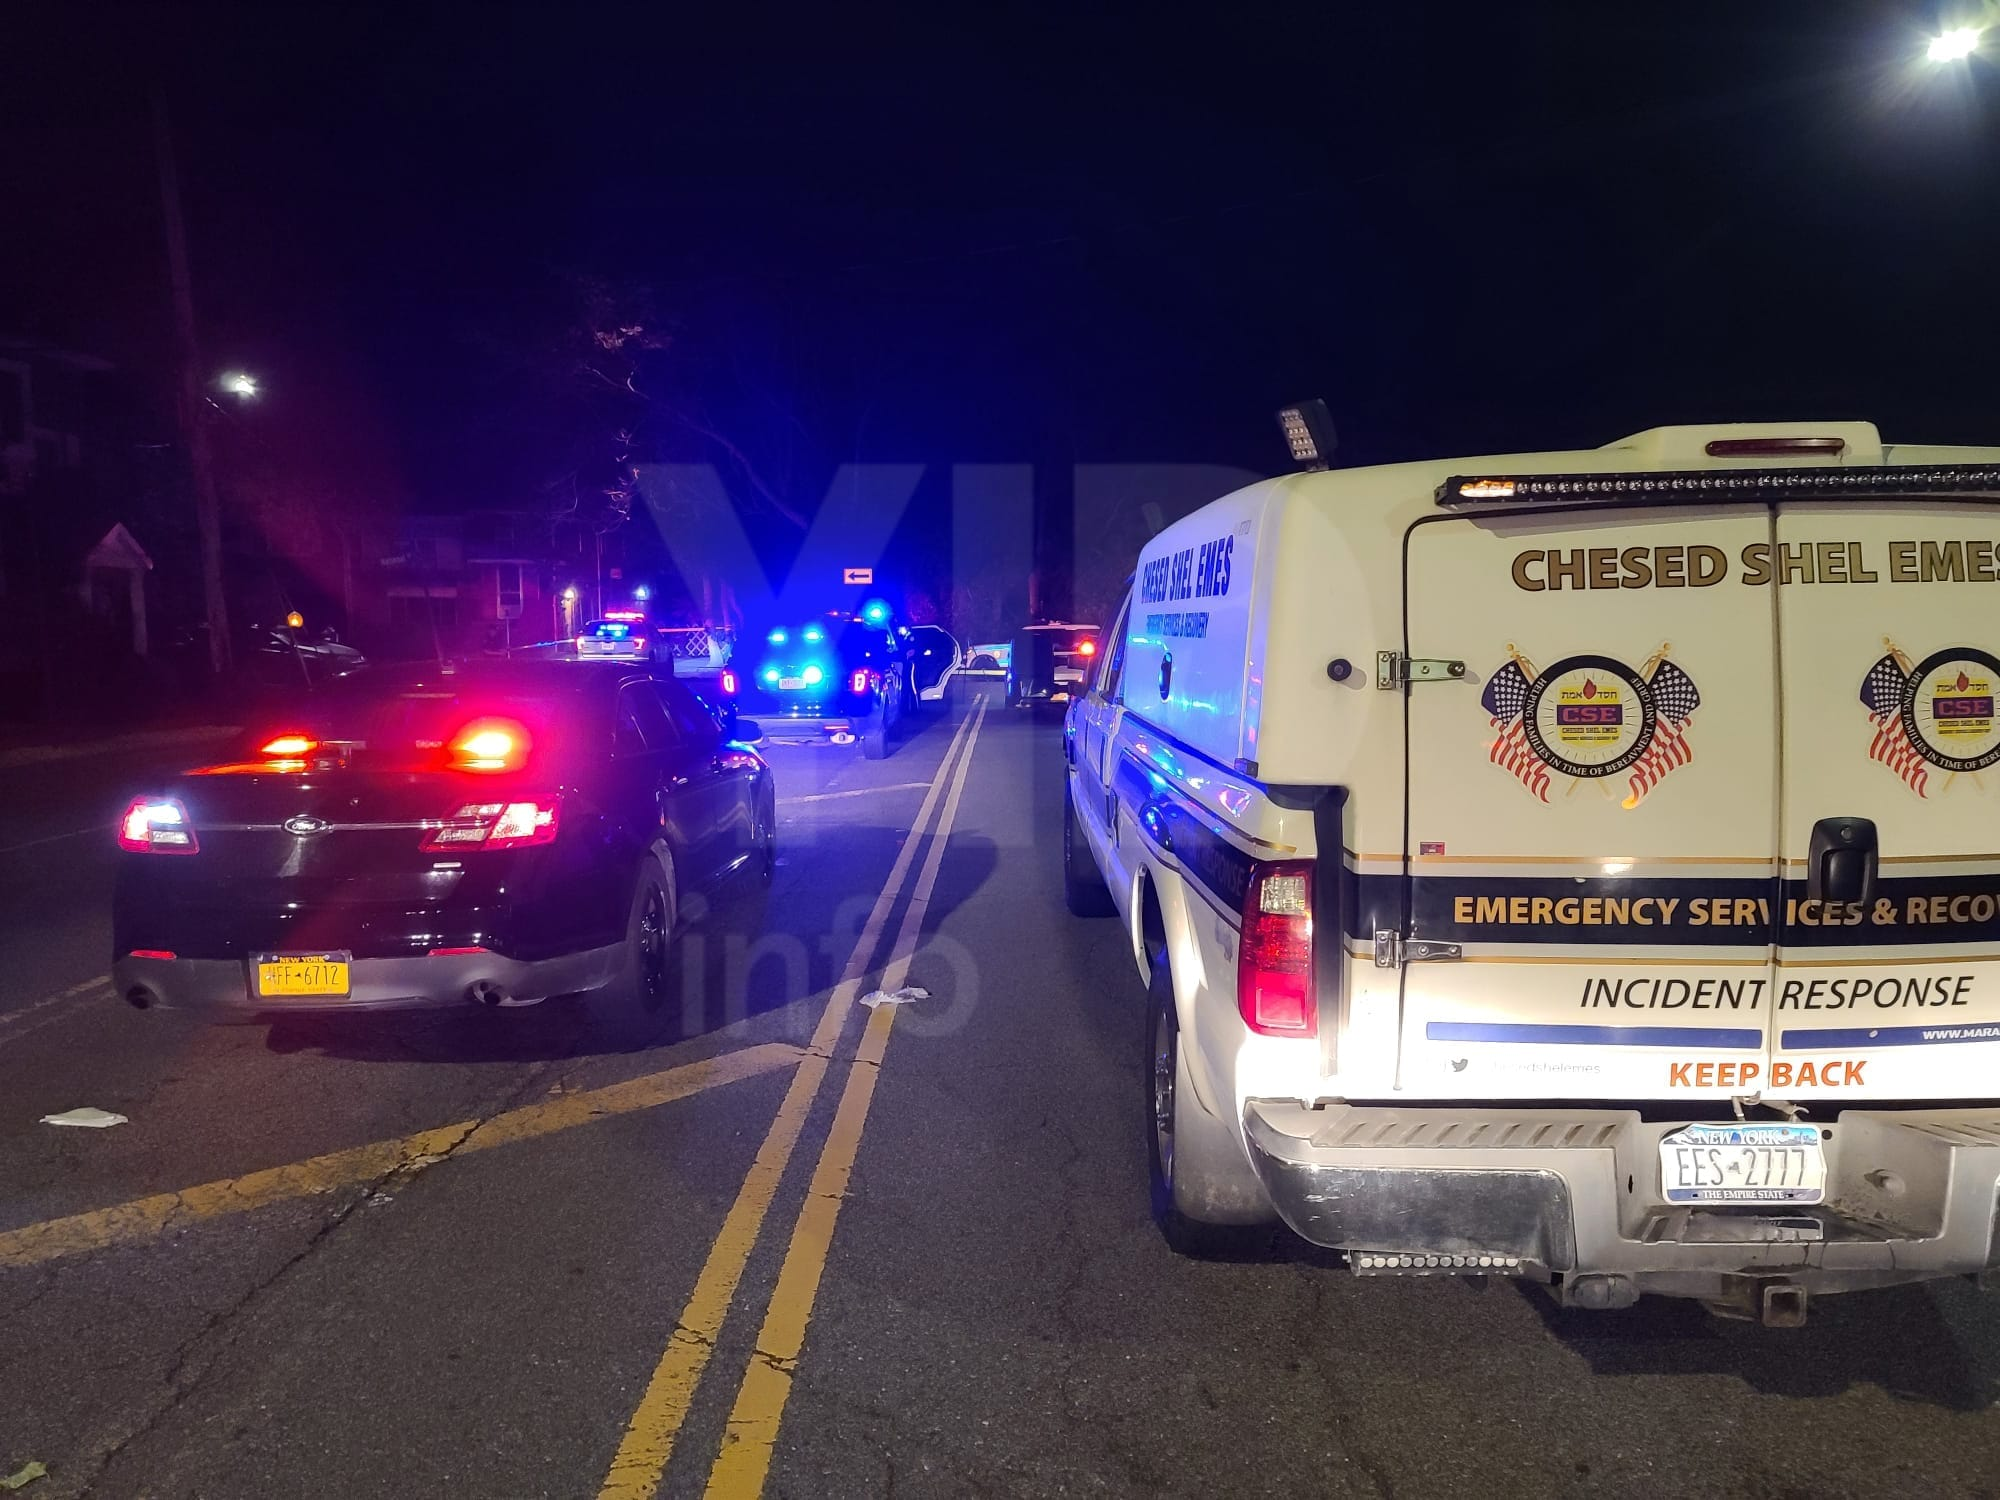 TRAGEDY IN CANARSIE: Jewish teen killed in fatal car crash, 4 others injured.emains on the scene where police are trying to put together the entire story.